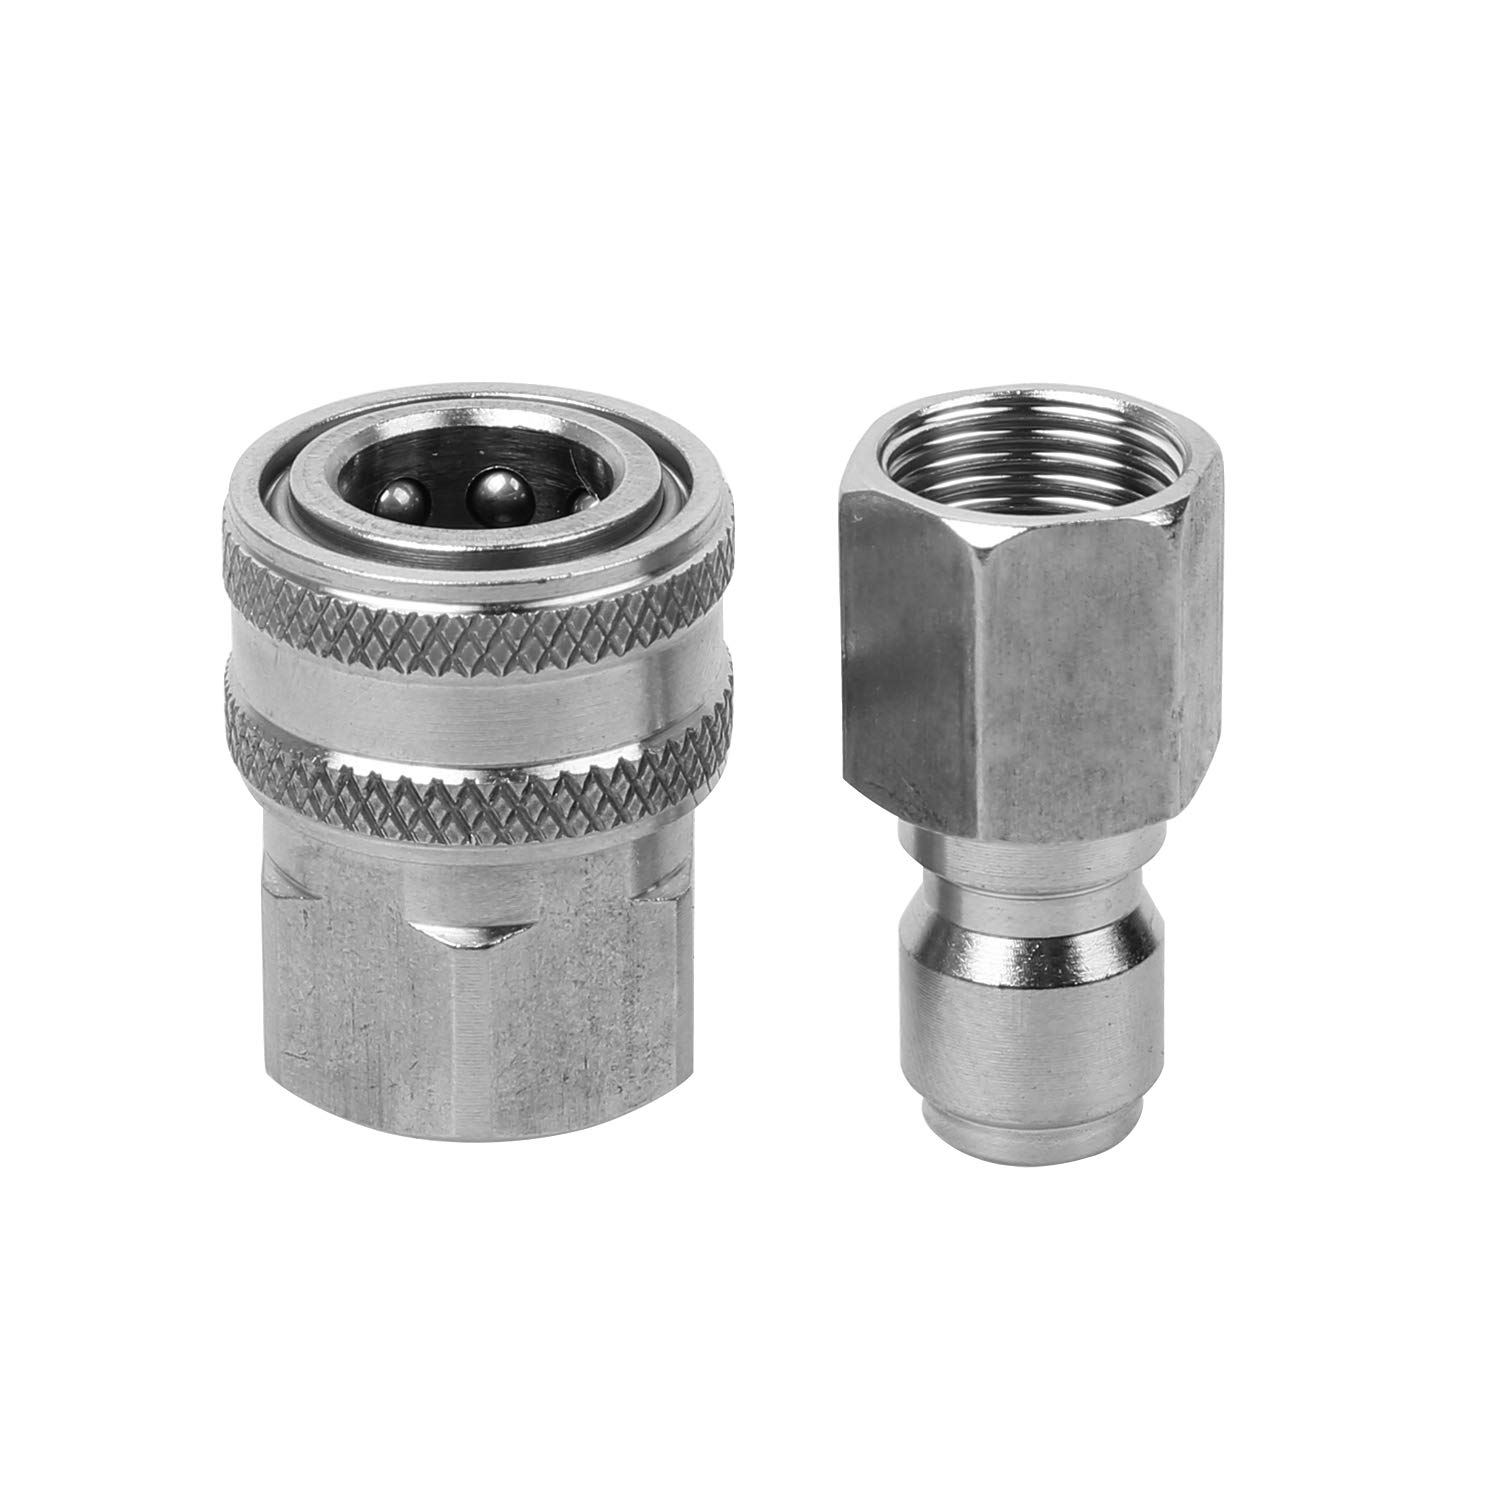 Sooprinse Stainless Steel Quick Connect Pressure Washer Adapter Set G3/8 Inch Female Quick Connect Plug and Socket for Attach a Hose to The Water Pumps, Hose Reels, Max Pressure 5000 PSI Rating by Sooprinse